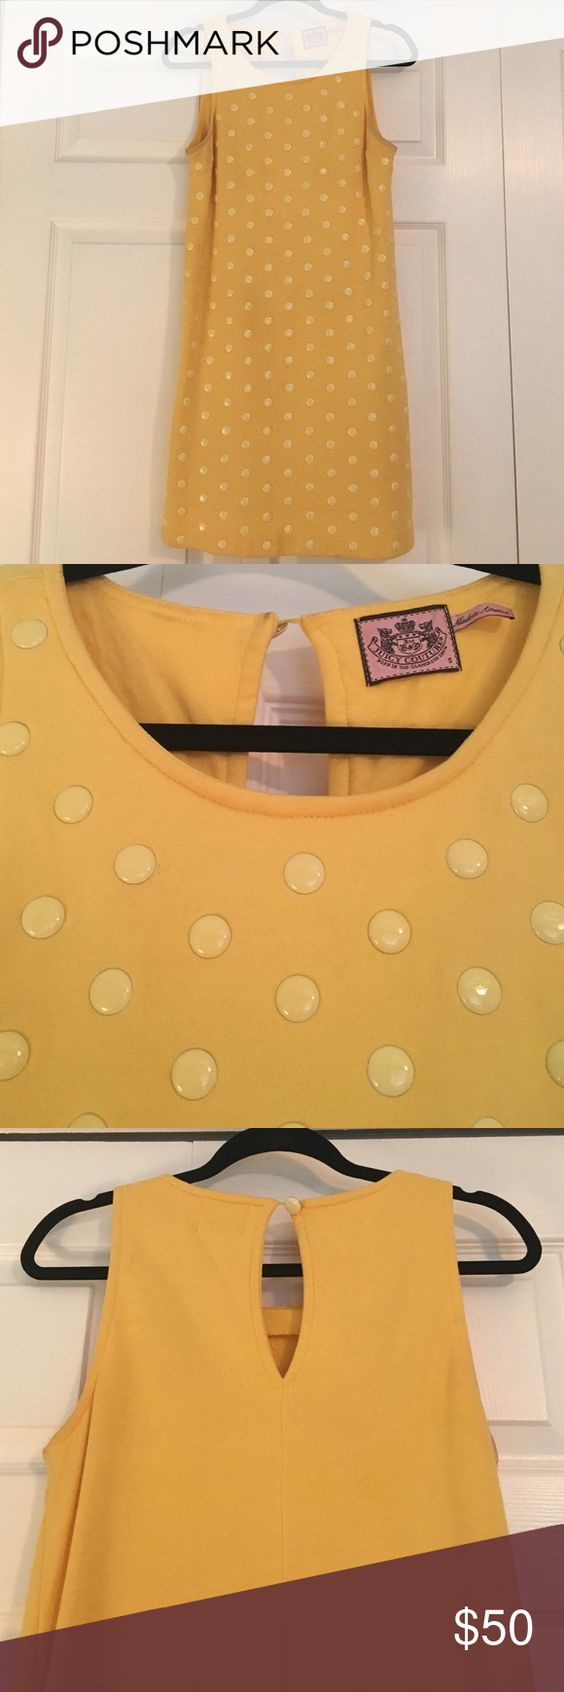 Yellow Juicy Couture Shift Dress Adorable dress with pockets. Has some discoloration in the armpit area but it's not noticeable when worn. Juicy Couture Dresses Mini